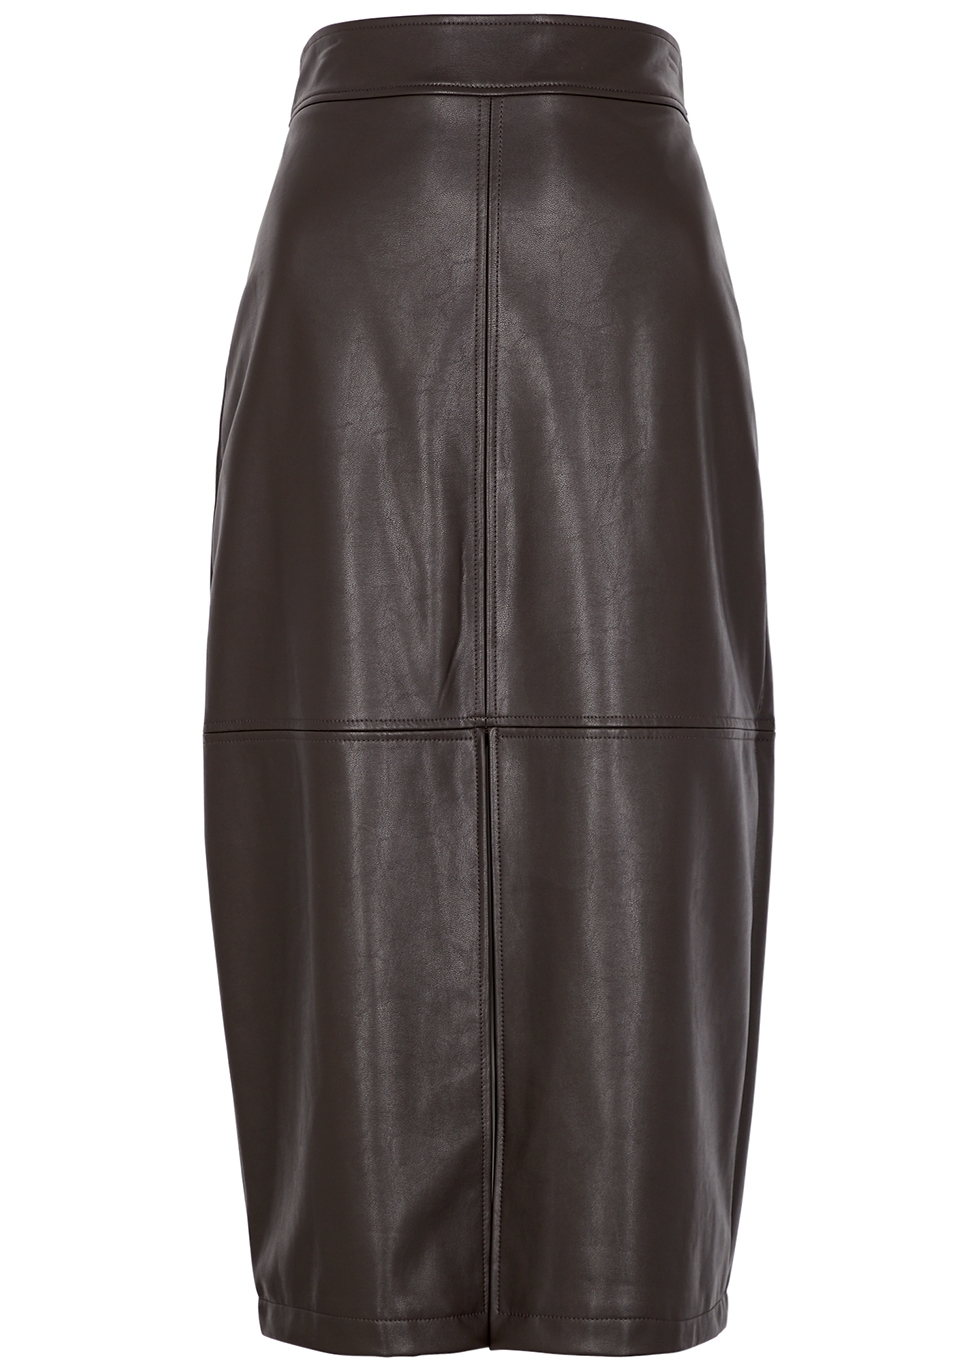 Moss dark brown faux leather midi skirt